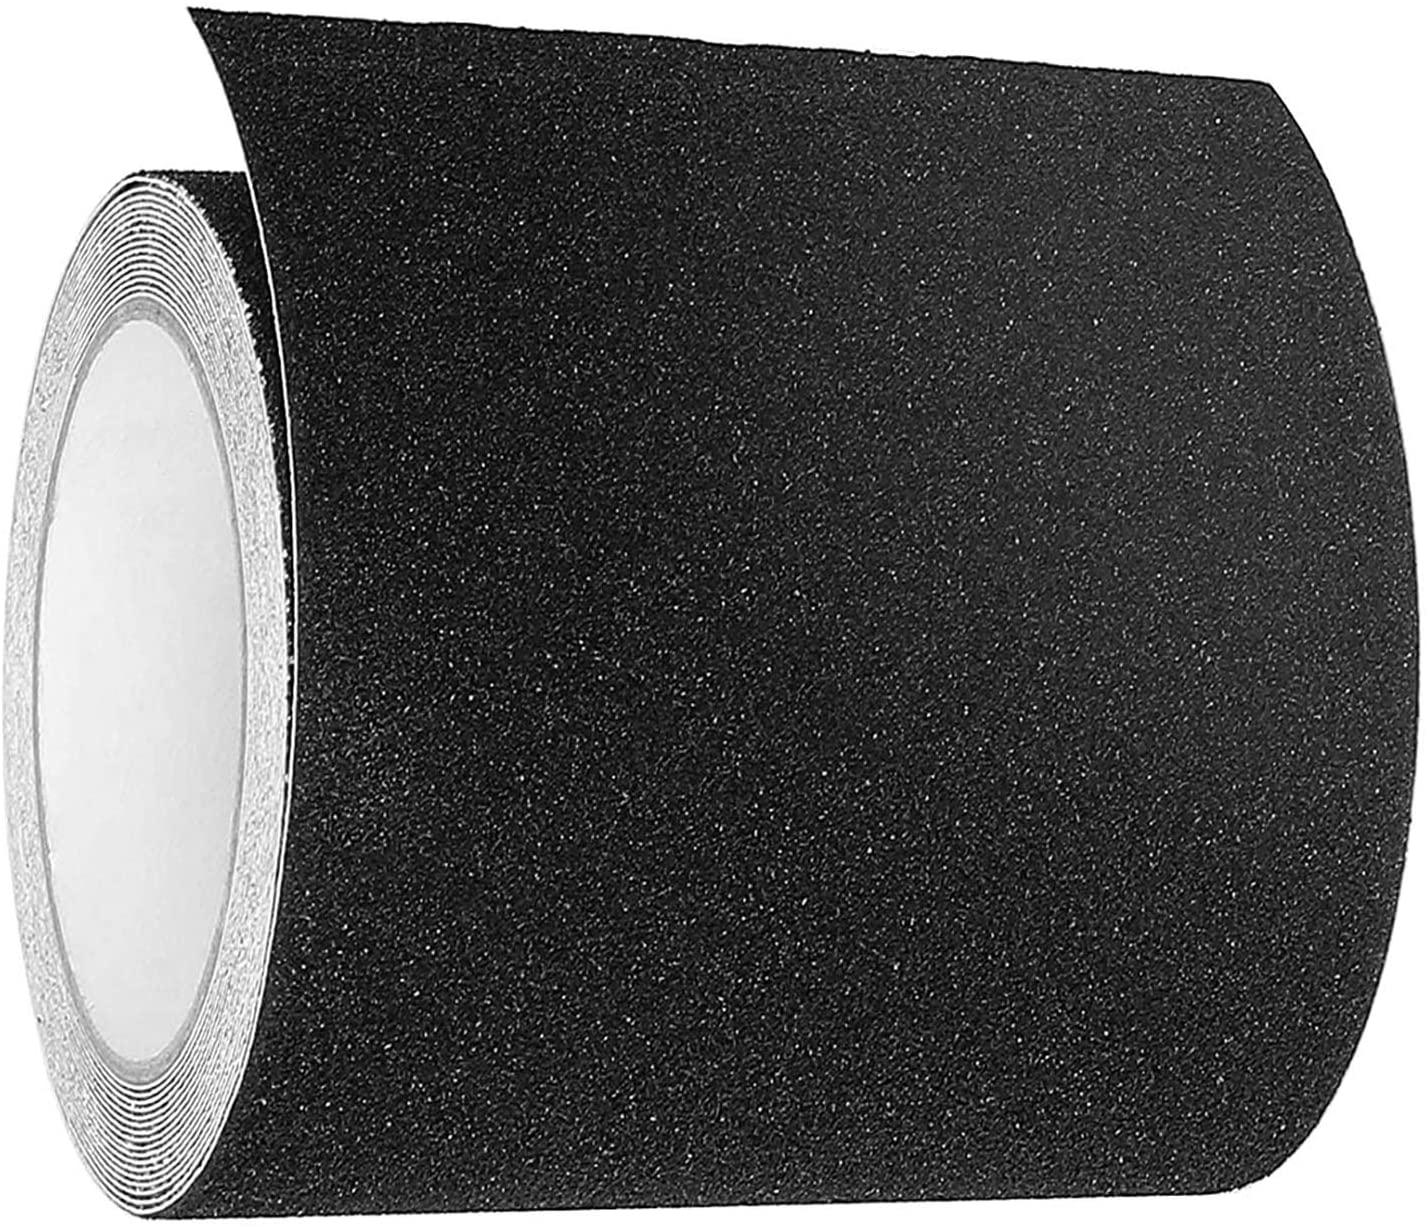 Anti Slip Tape Black, Non Slip Safety Grip Tape for Stairs Steps Non Skid Tread High Traction Friction Adhesive Tape